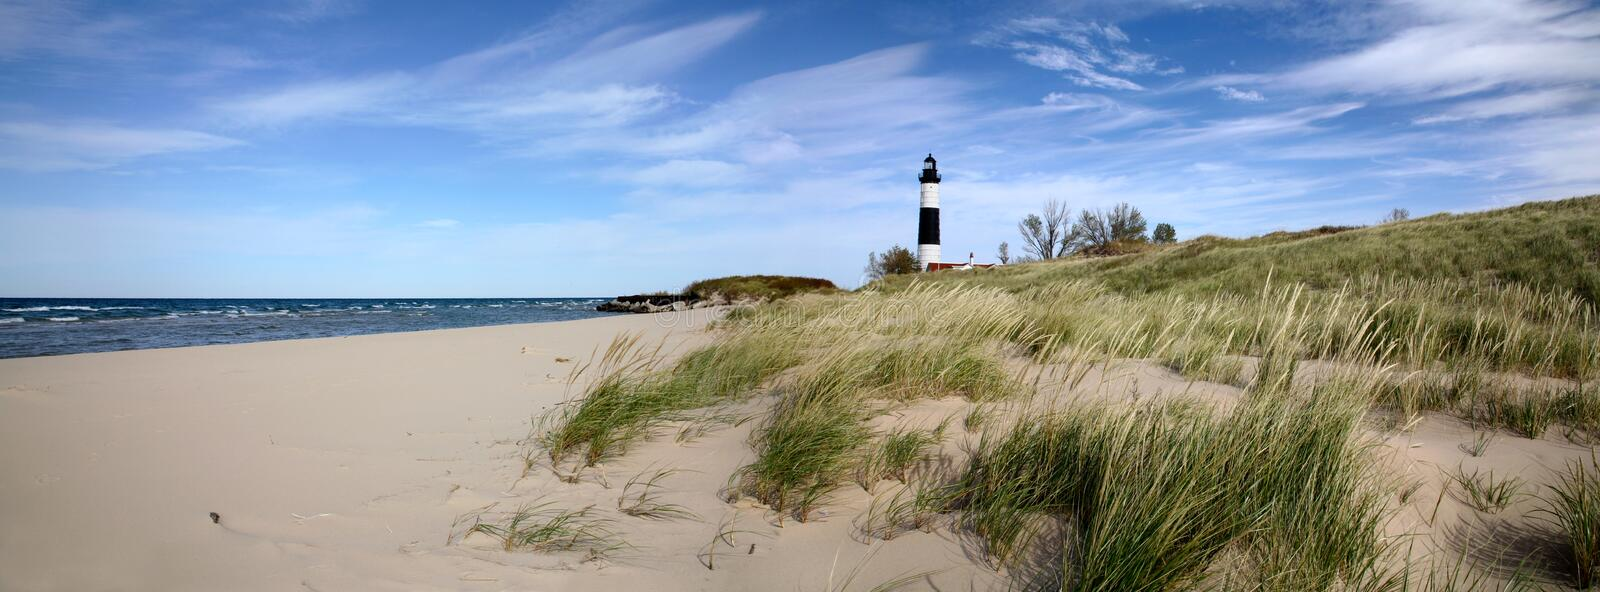 Download Big Sable Point Lighthouse stock image. Image of point - 9303803